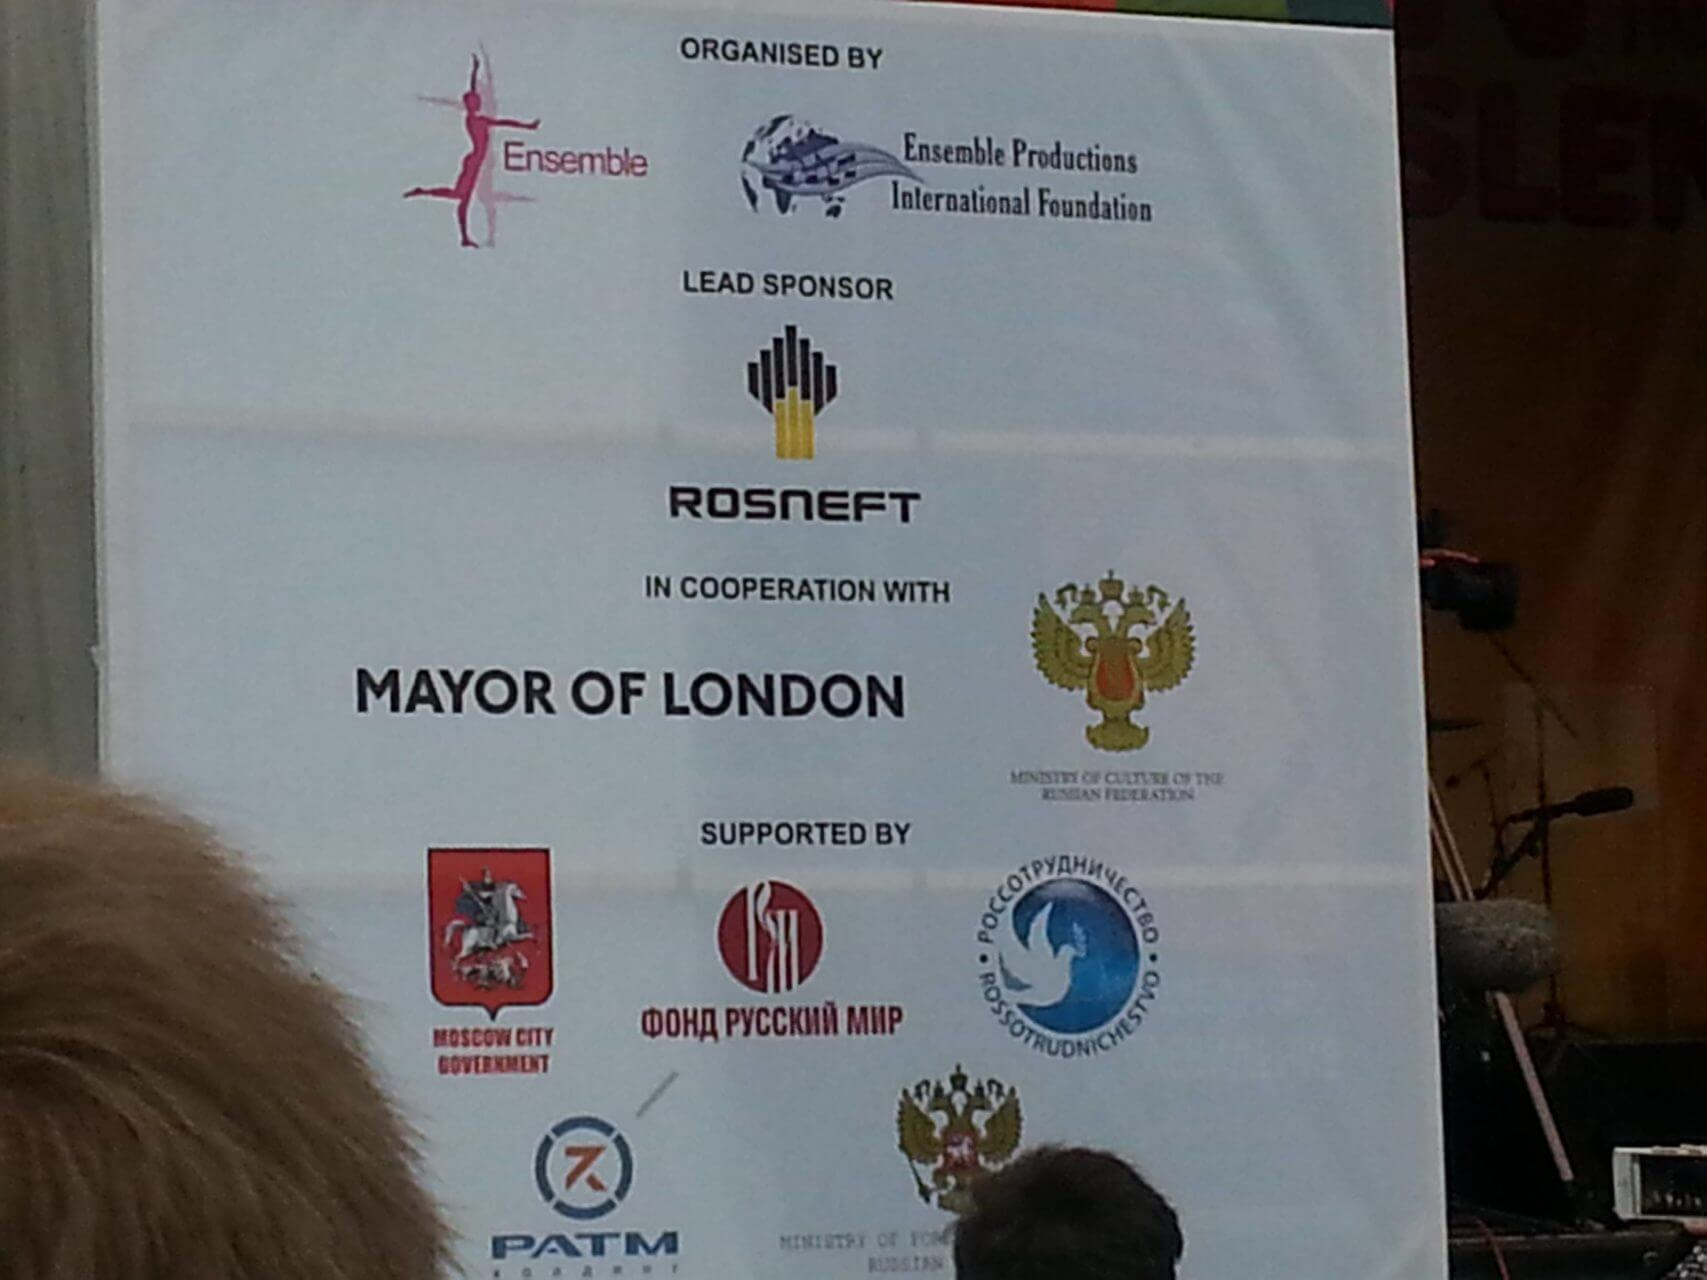 Sunday at Trafalgar Square: oil sponsorship meets Russian militarism